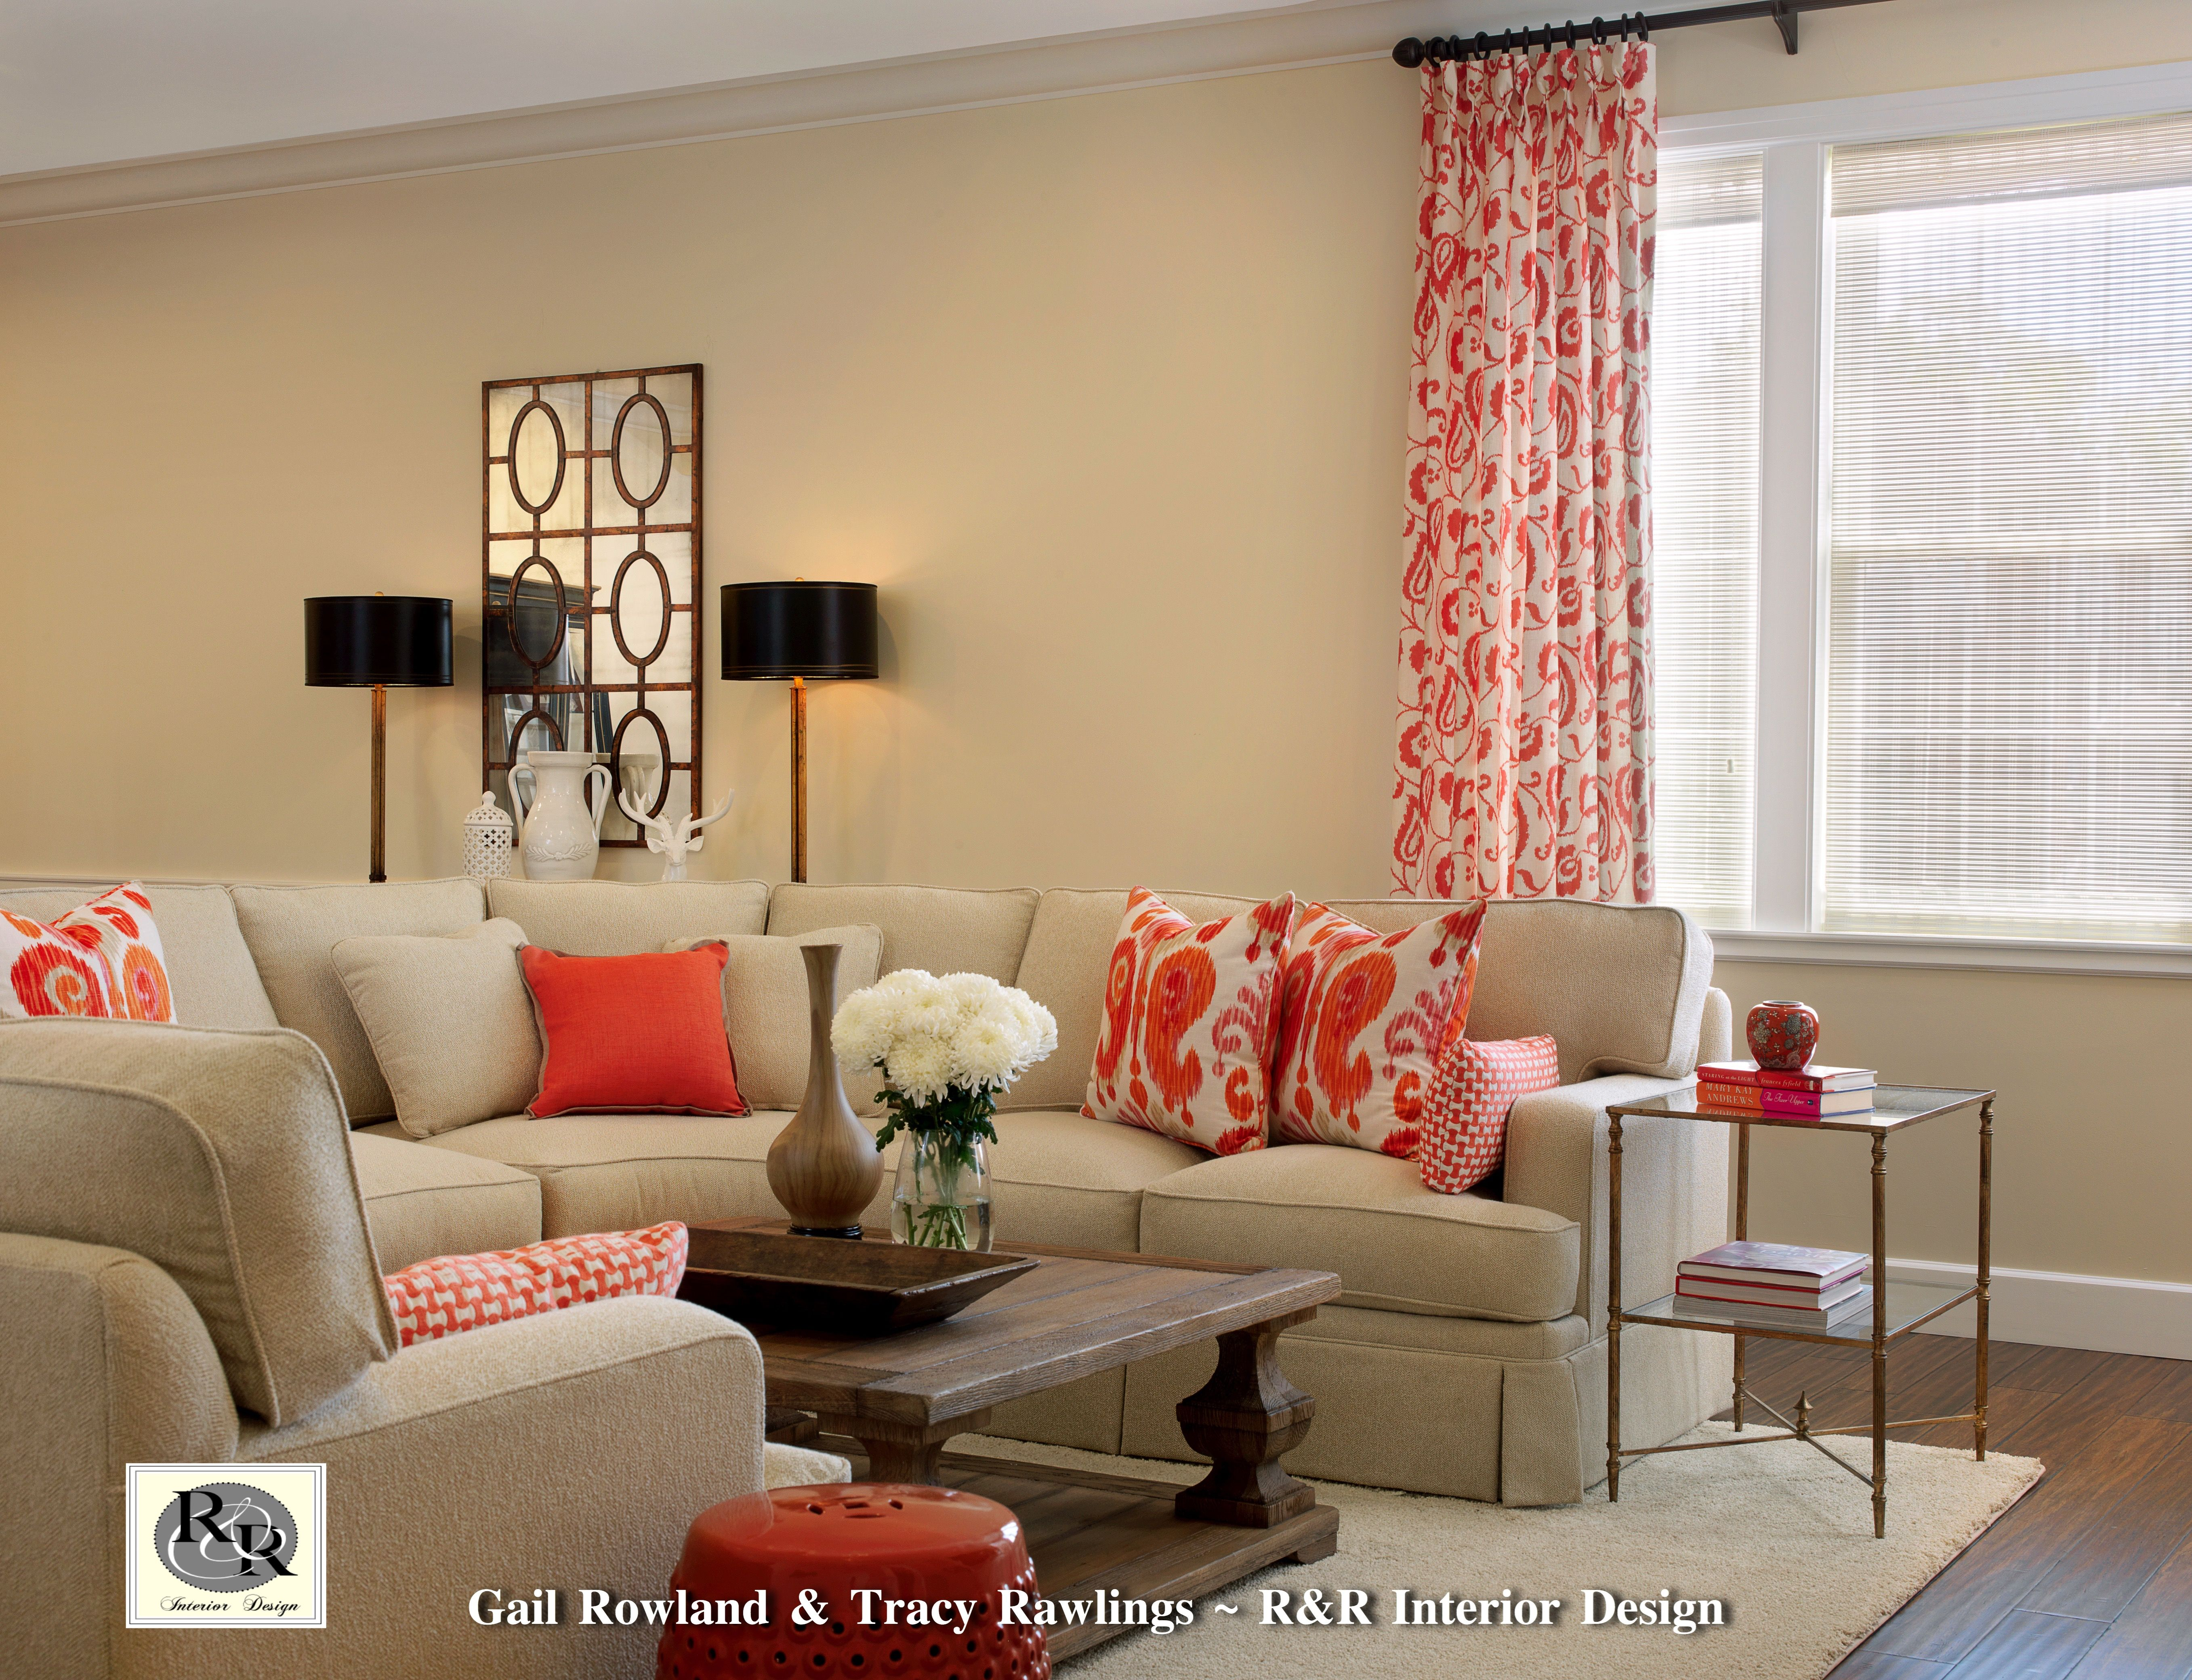 University Of Missouri Sorority House Design By Gail Rowland Tracy Rawlings Need Pictures Or Wall Decor